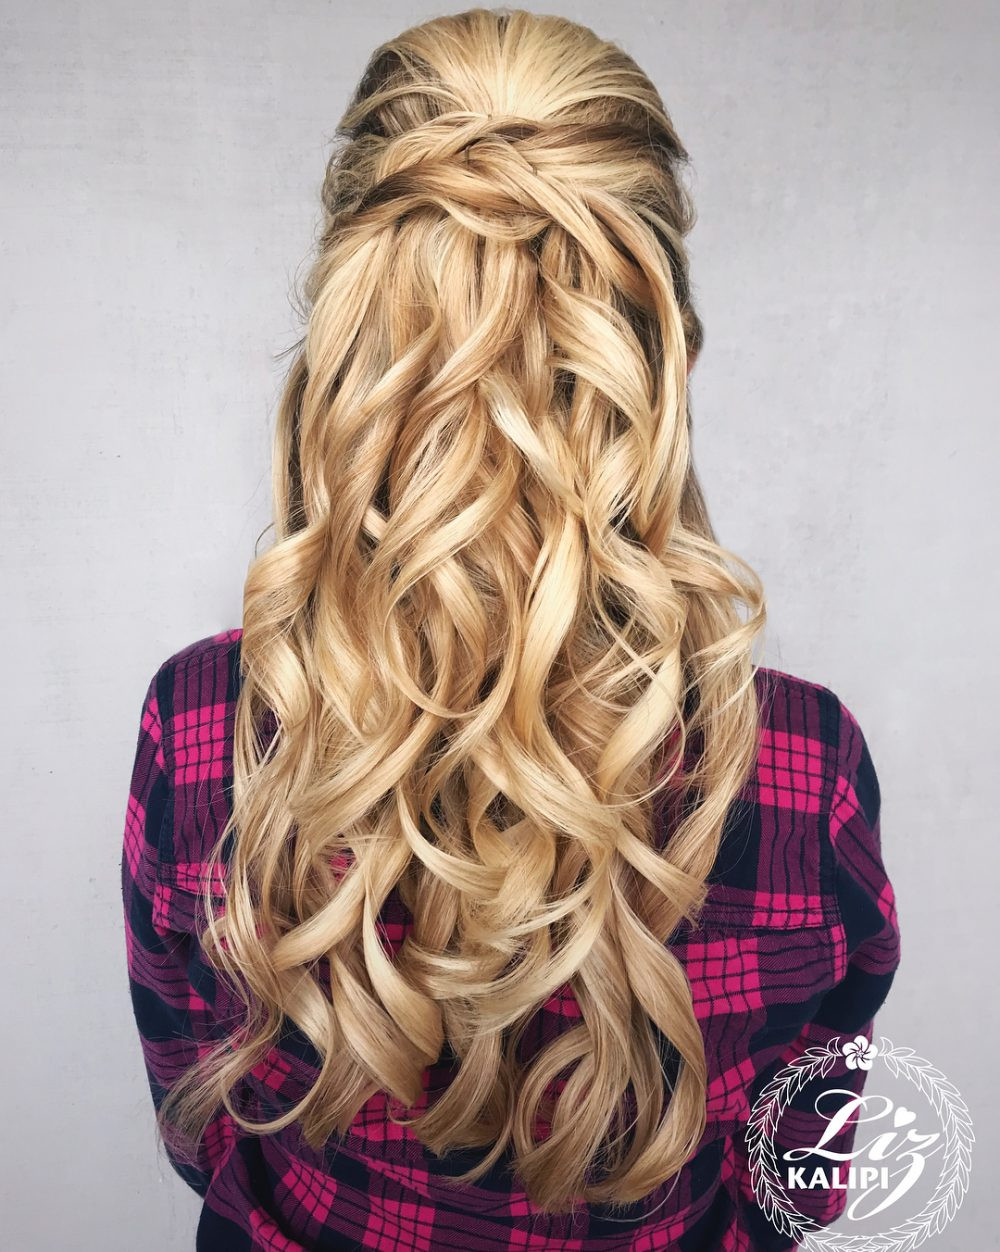 Best ideas about Fancy Hairstyles For Long Hair . Save or Pin 29 Prom Hairstyles for Long Hair That Are Gorgeous Now.